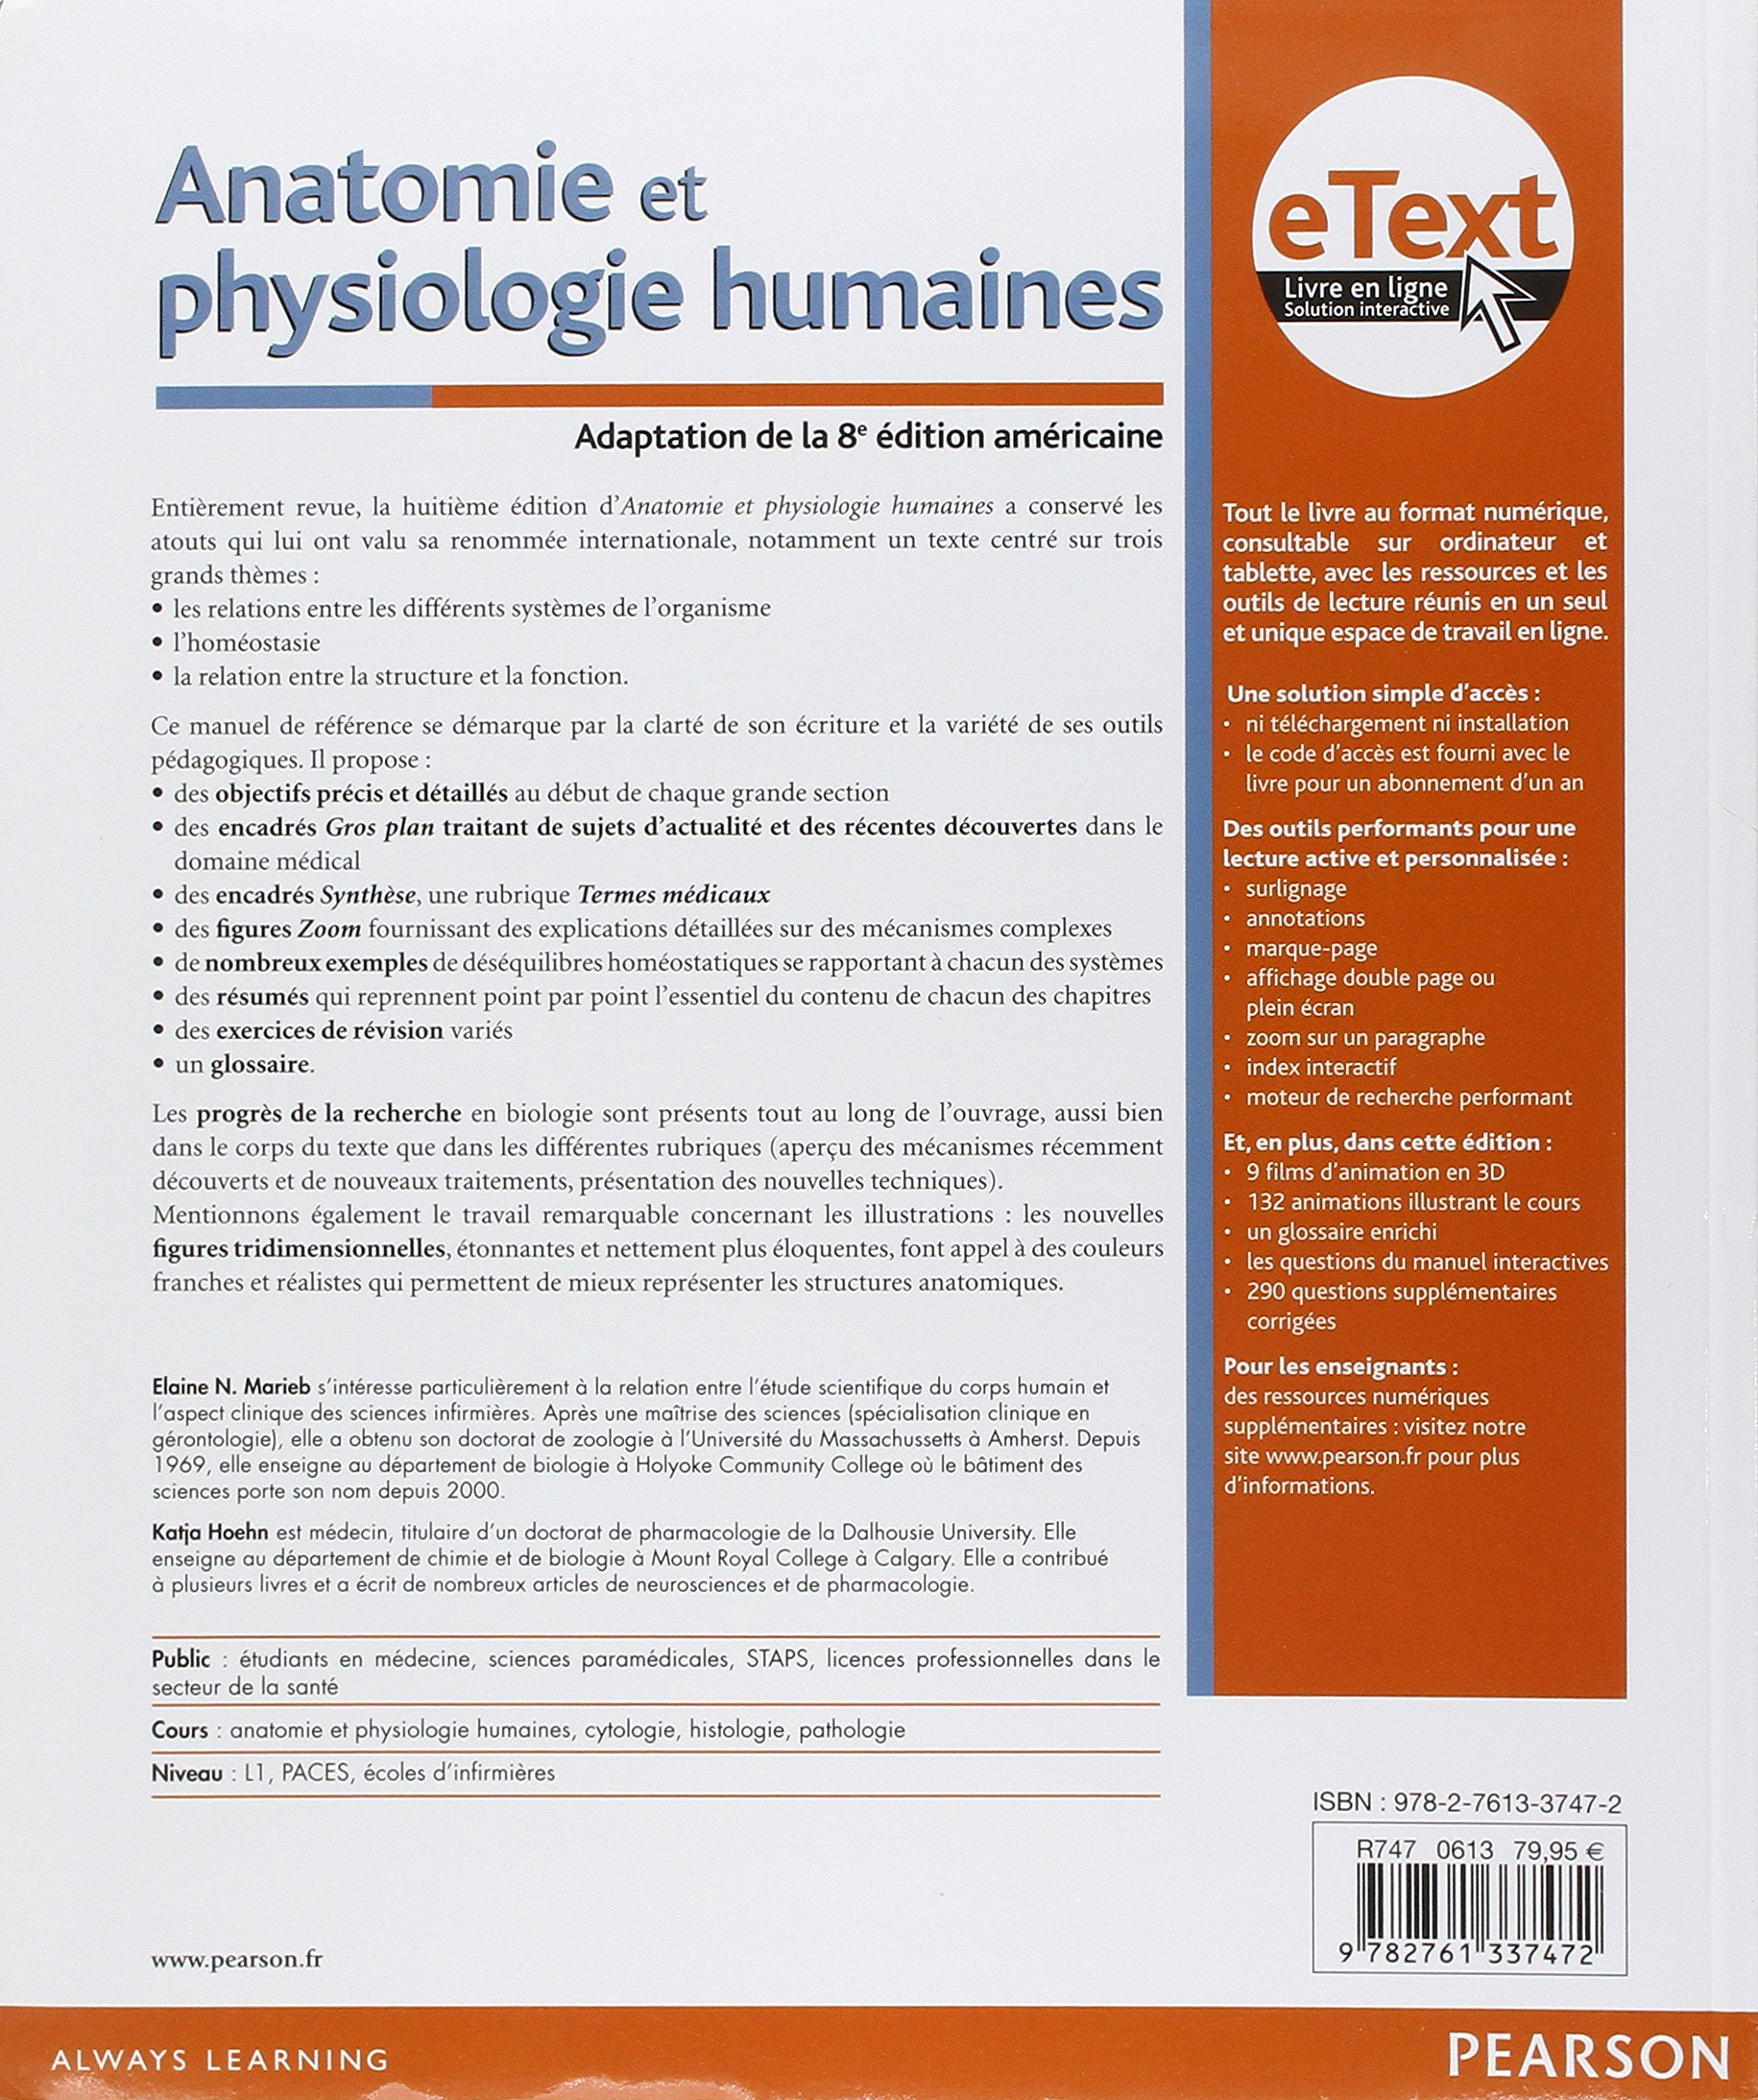 Anatomie et physiologie humaine (French Edition): 9782761337472 ...